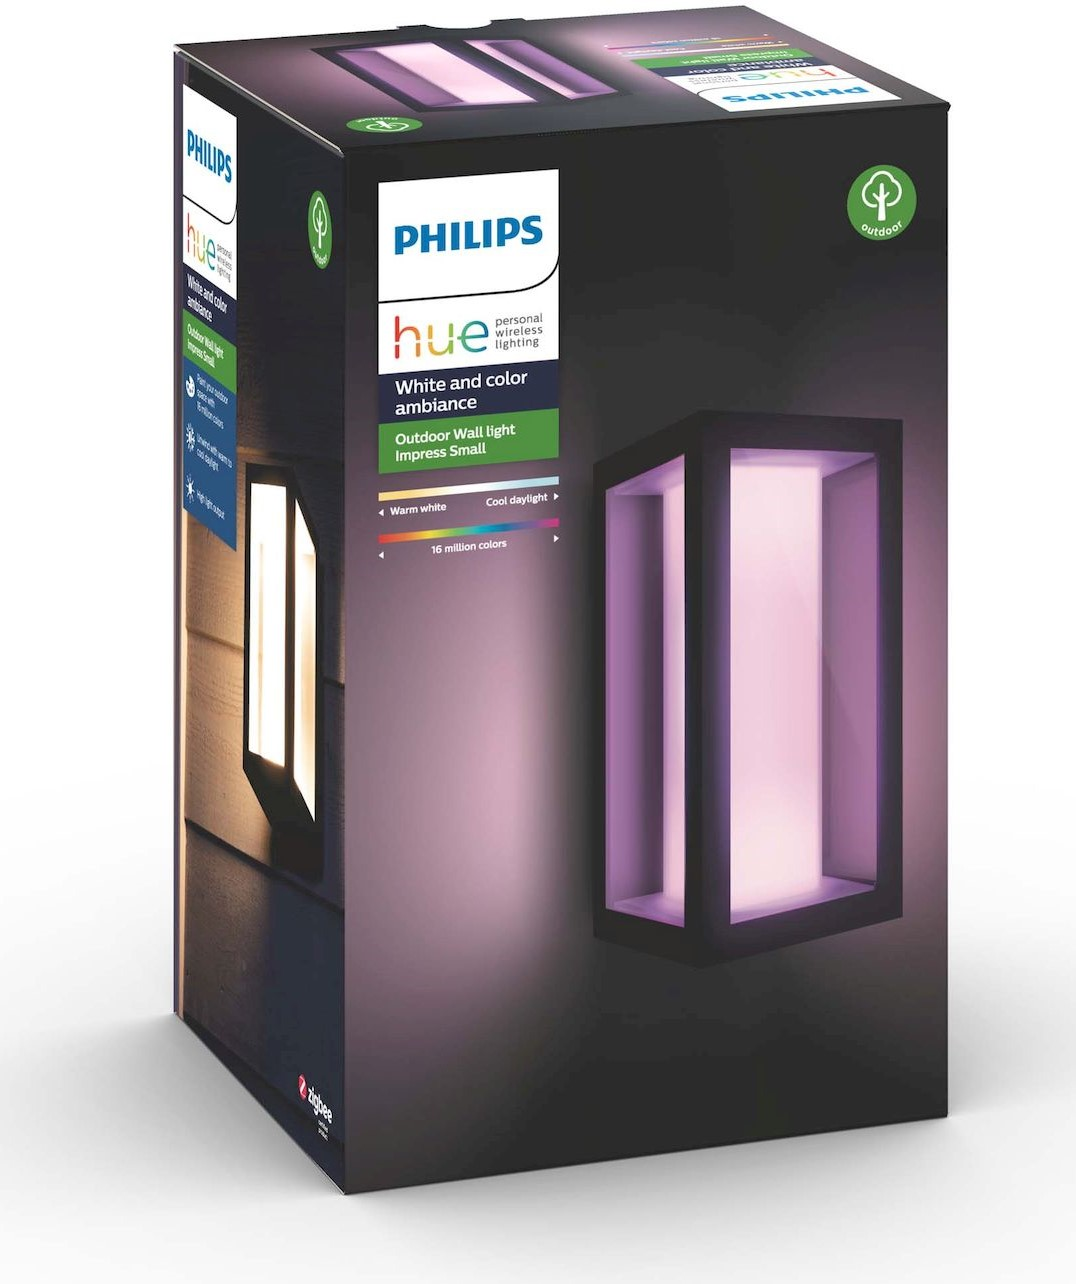 Ulkoseinävalaisin Philips Hue Impress WACA EU LED kapea 8W IP44 240x141x120 mm musta